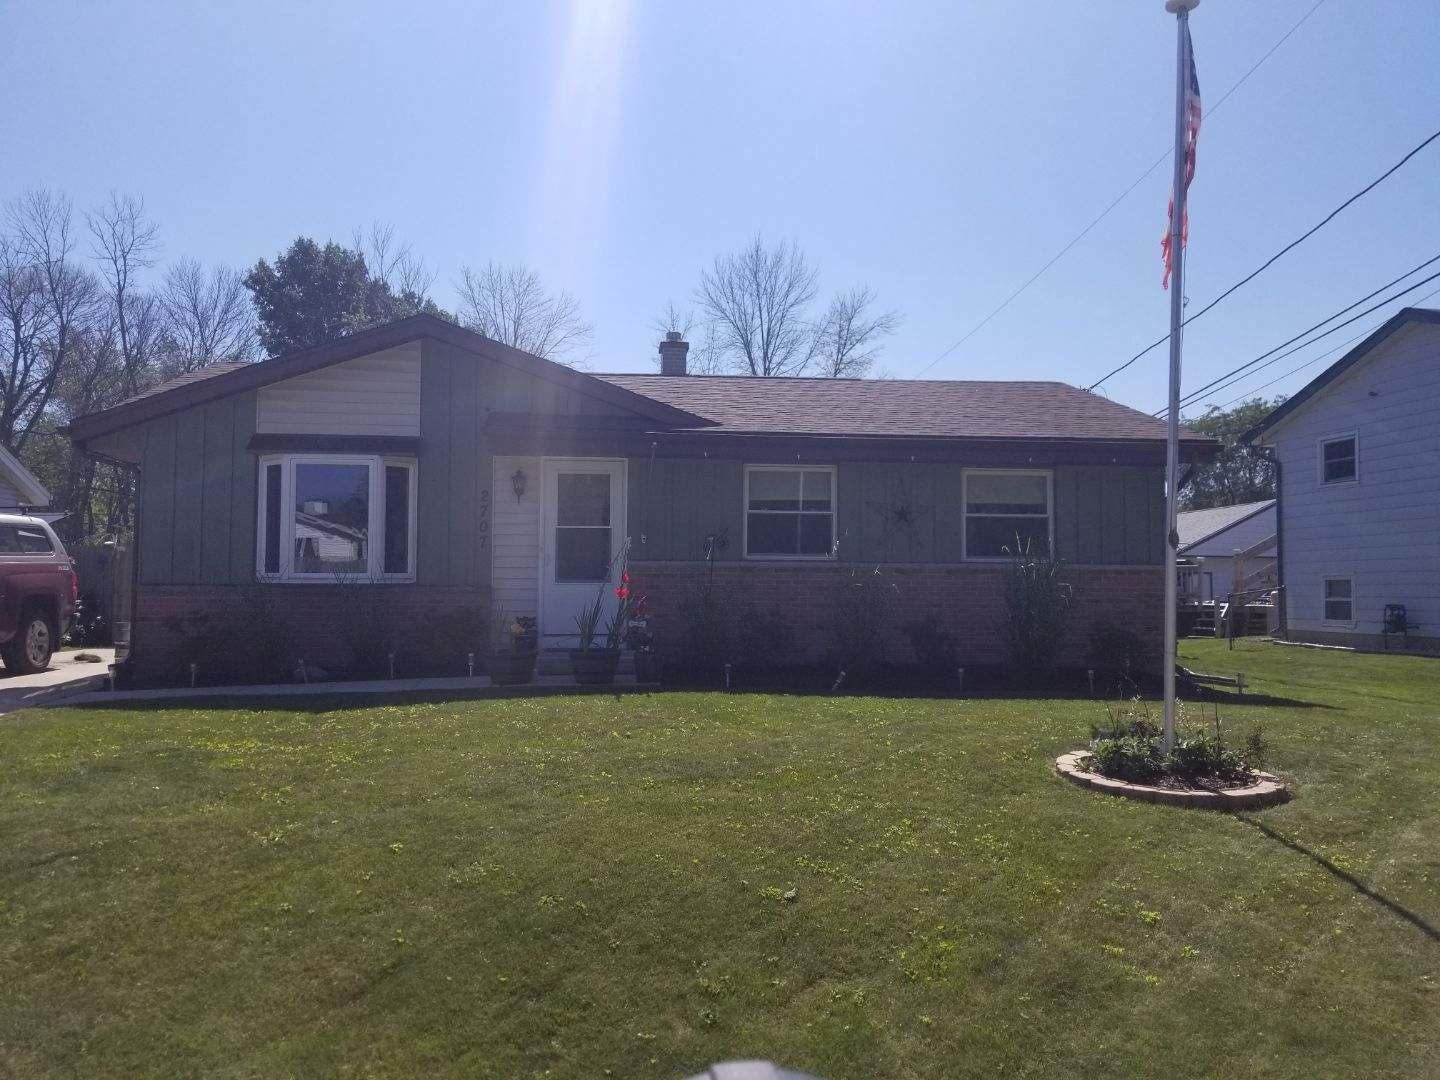 2707 Sumac Dr, Caledonia, Wisconsin 53402, 3 Bedrooms Bedrooms, 5 Rooms Rooms,1 BathroomBathrooms,Single-Family,For Sale,Sumac Dr,1622499